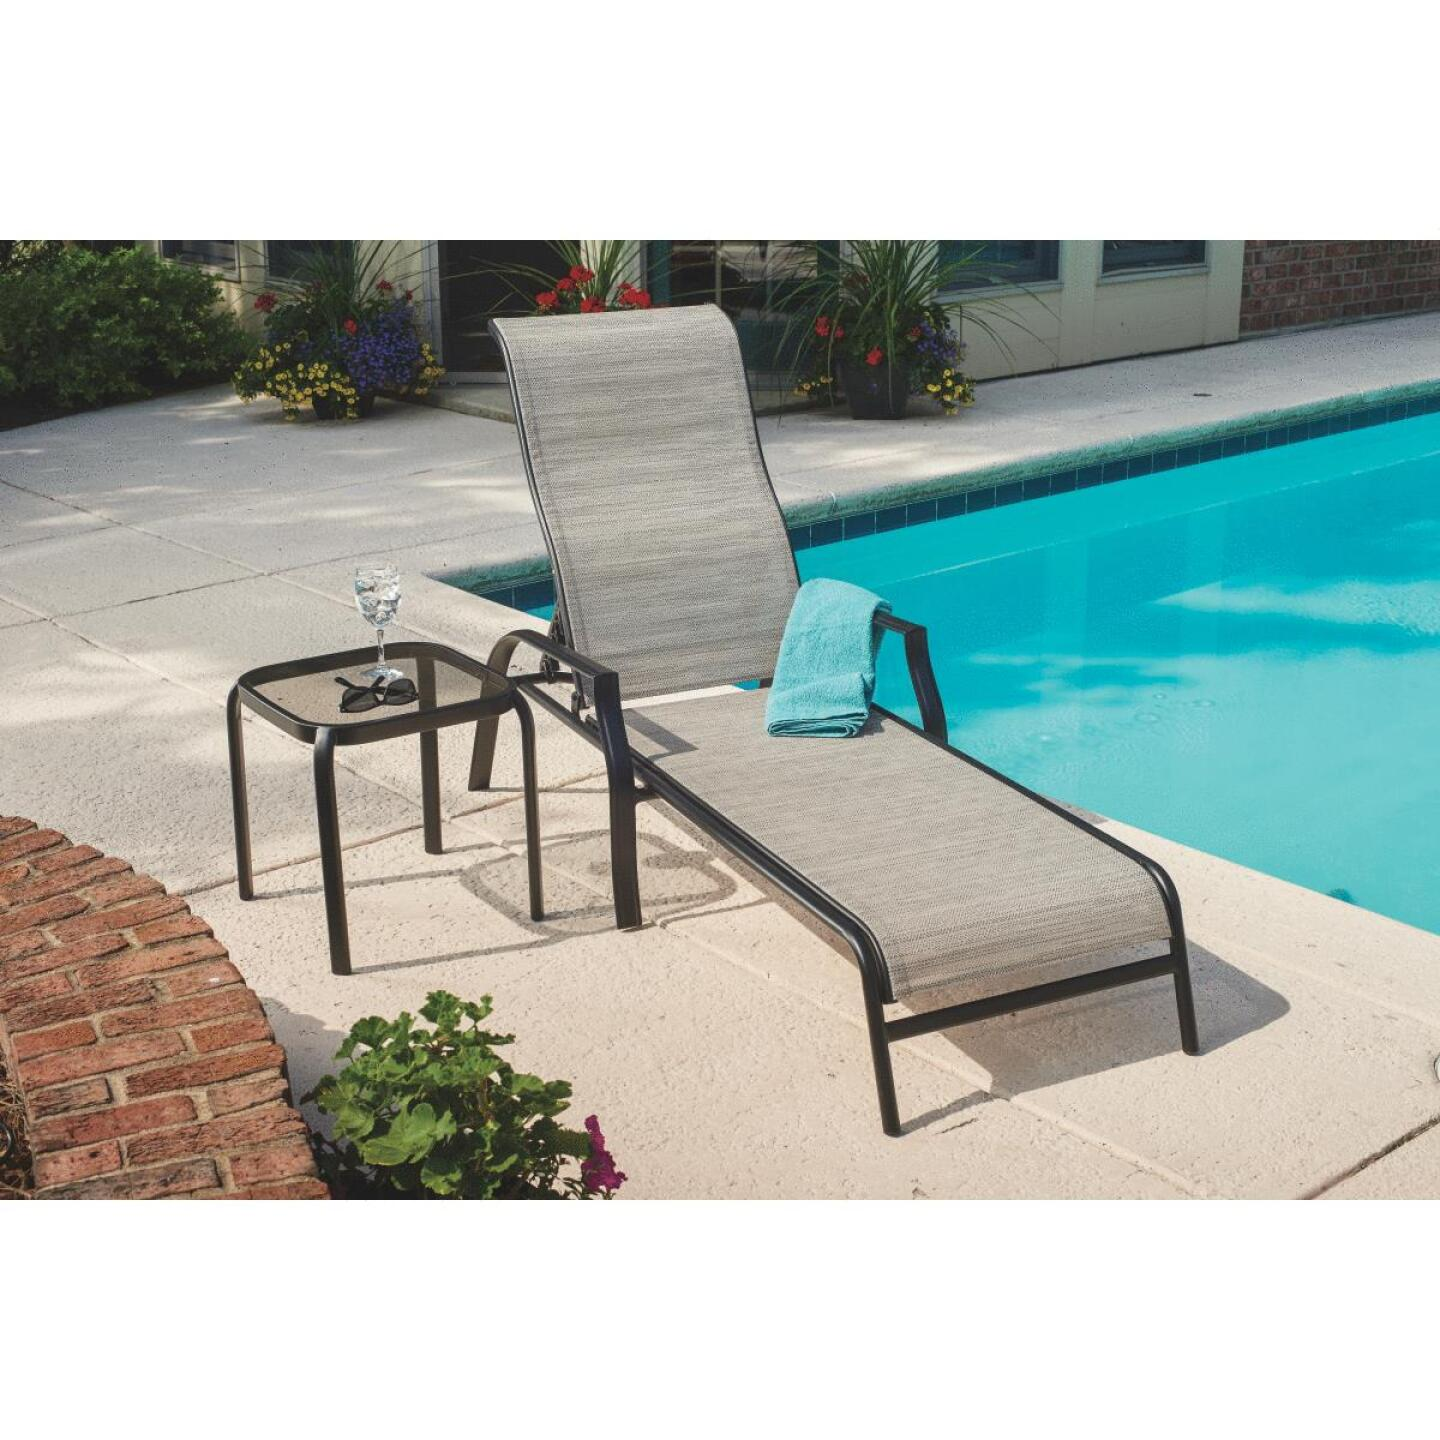 Outdoor Expressions Galveston Chaise Lounge Image 5